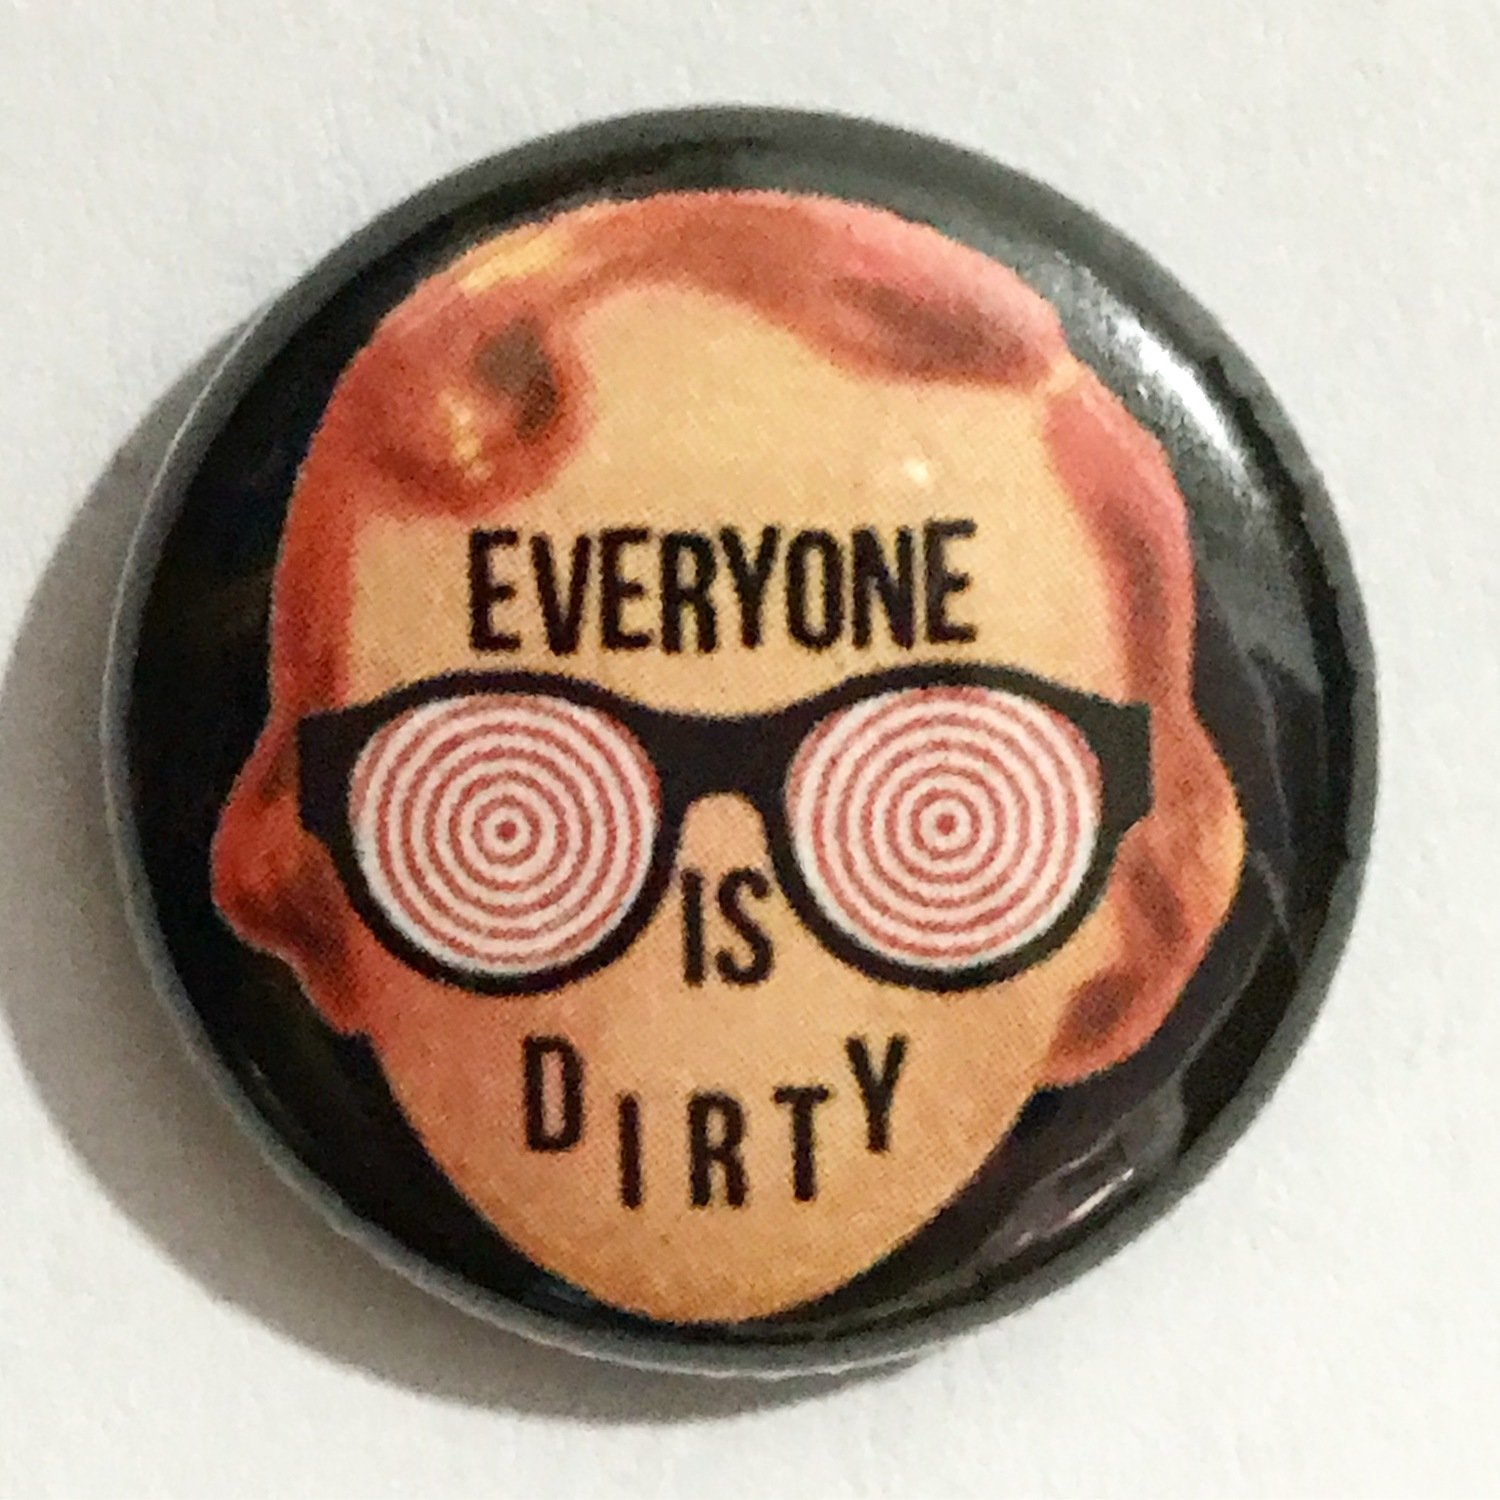 Everyone Is Dirty Pin